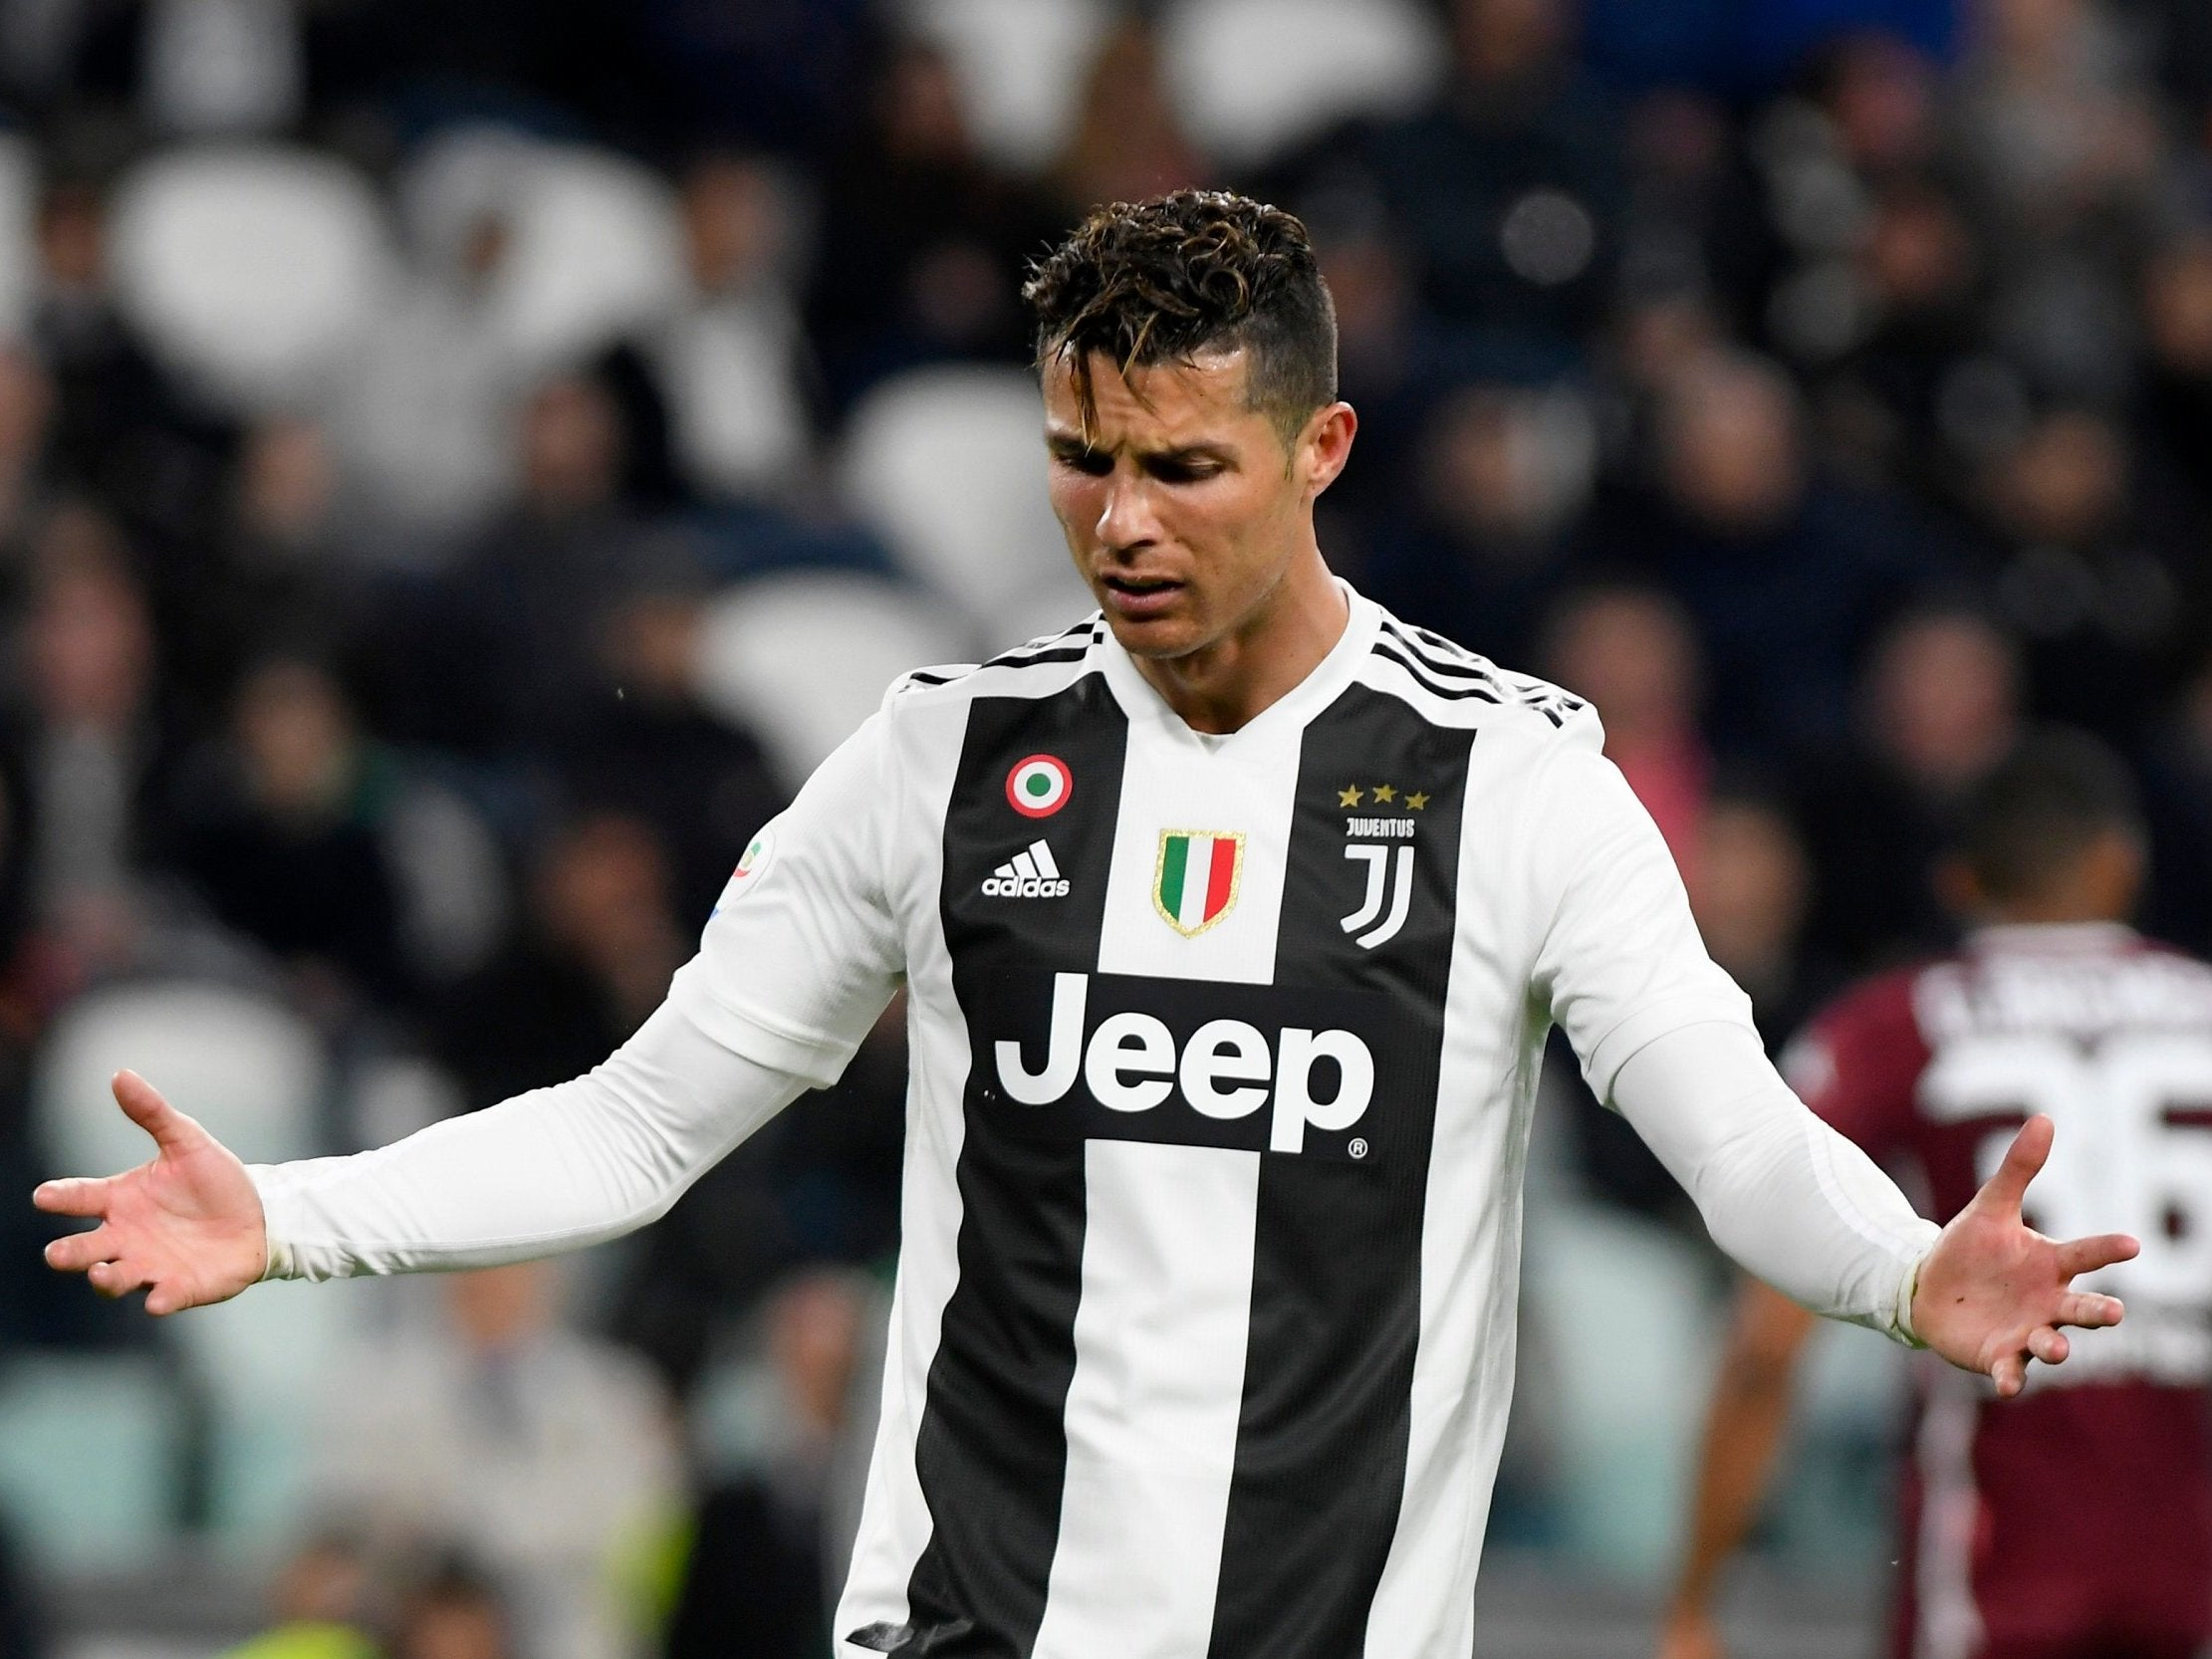 Fifa 20: Juventus to be renamed in new game after PES buys full rights to Cristiano Ronaldo's team